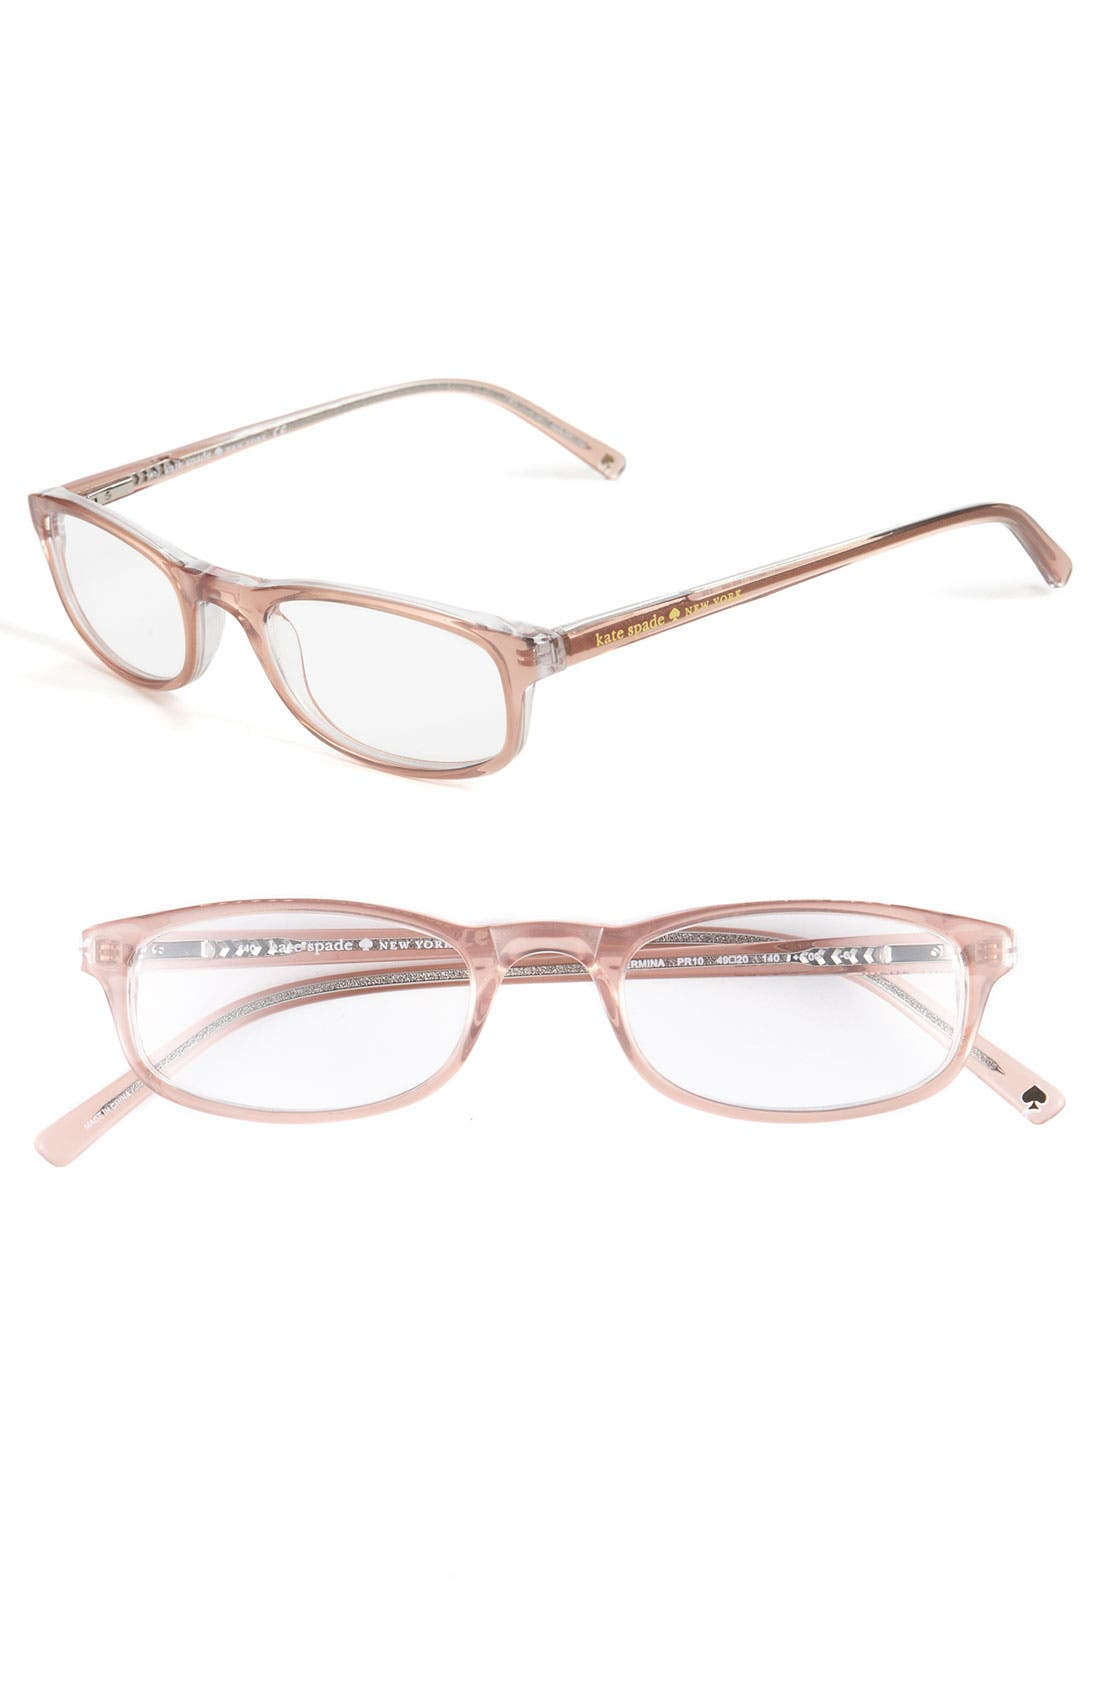 Main Image - kate spade new york 'fermina' reading glasses (Online Only)